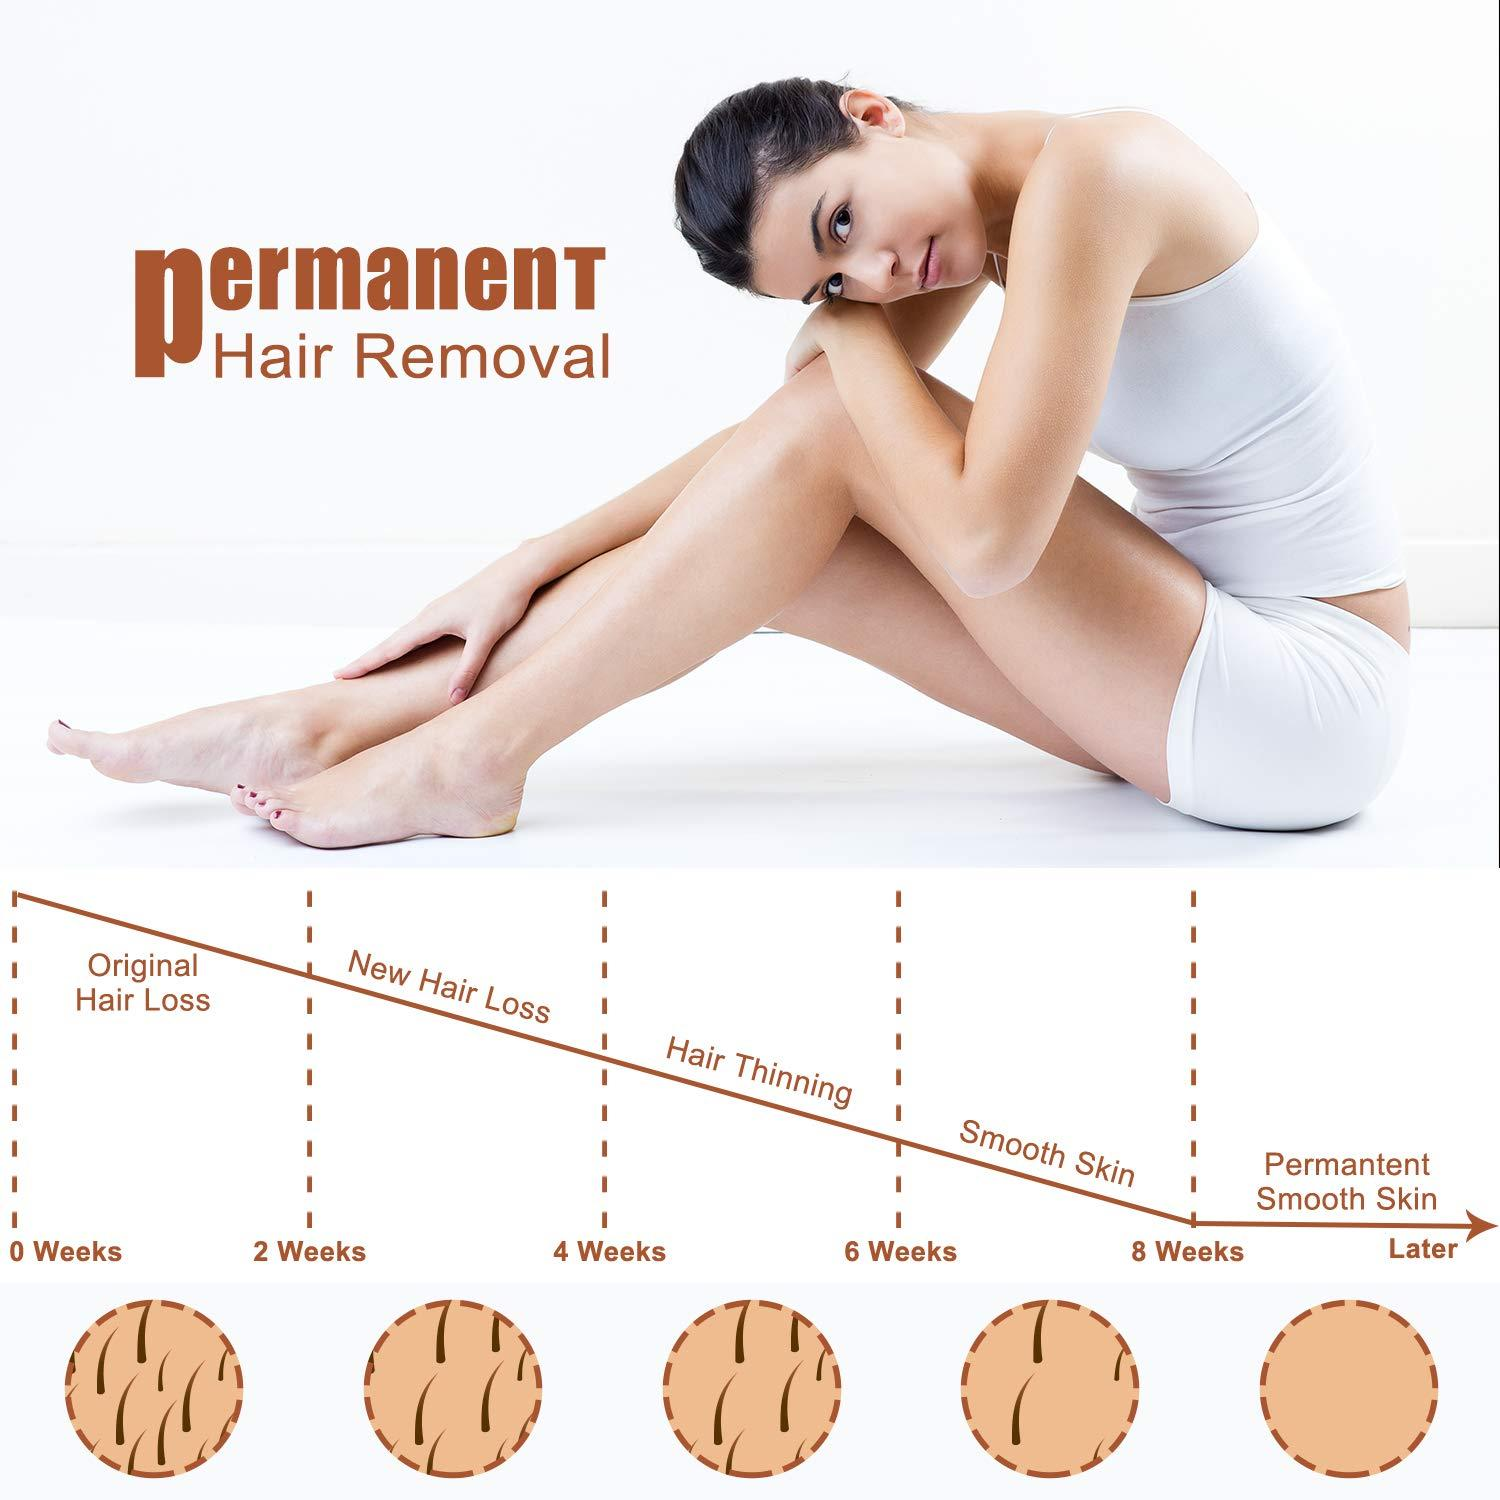 IPL Hair Removal for Women Men At-Home Permanent Painless Hair Remover Device for Facial Whole Body Upgraded to 999999 FlashesR